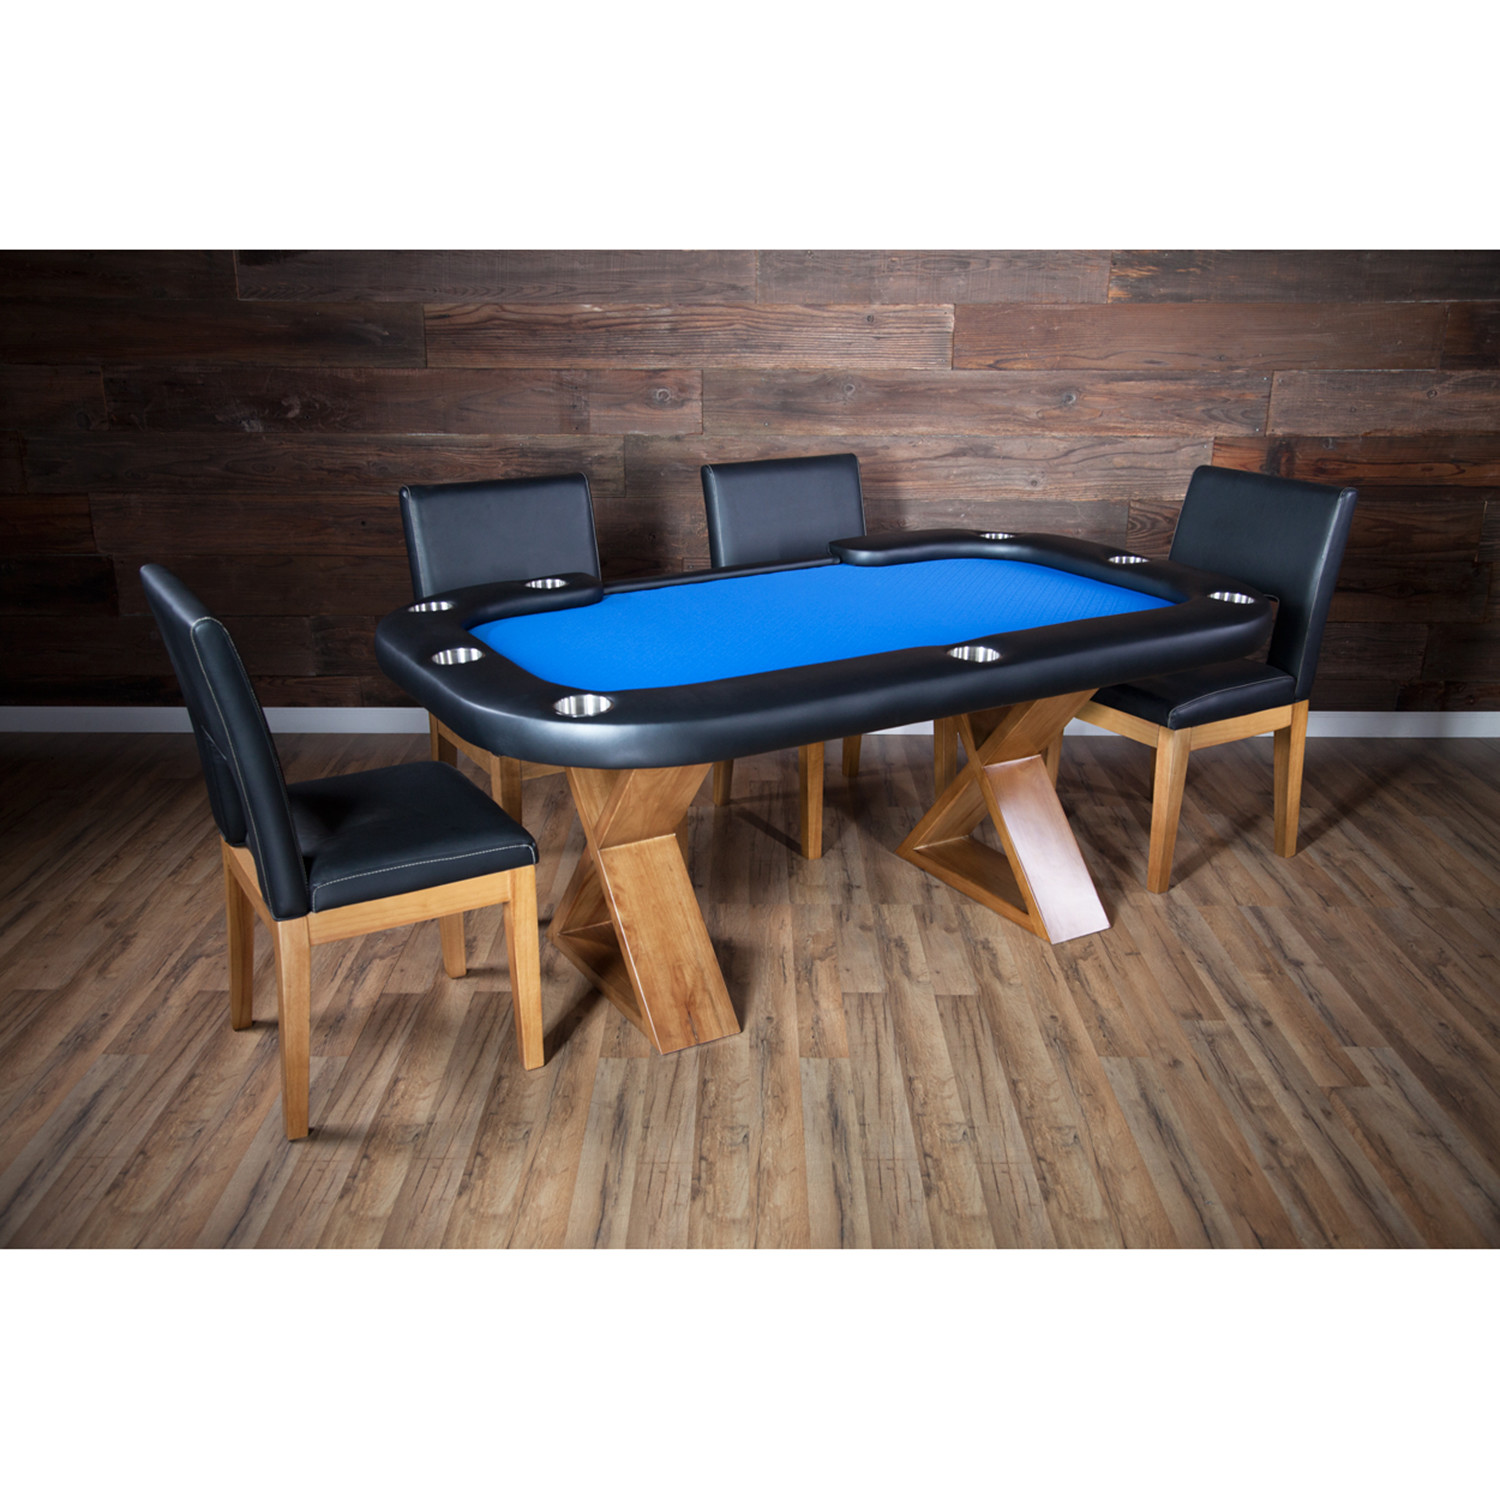 Helmsley Poker Dining Table // Blue (Table Only)